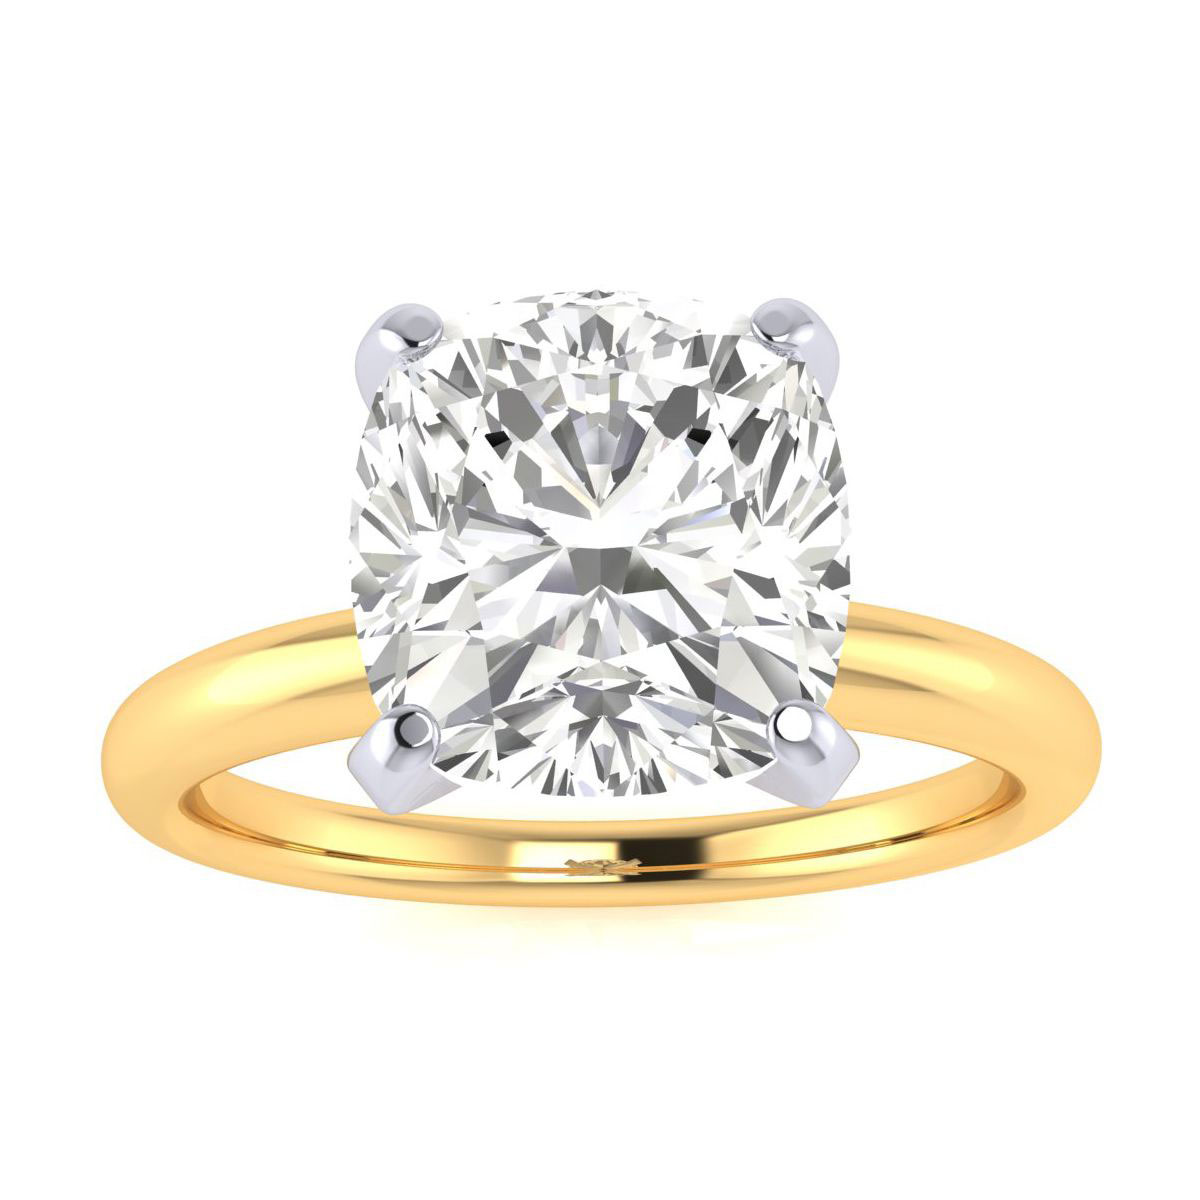 3ct Very Fine Cushion Diamond Solitaire in 14k Yellow Gold. Incredible Value.